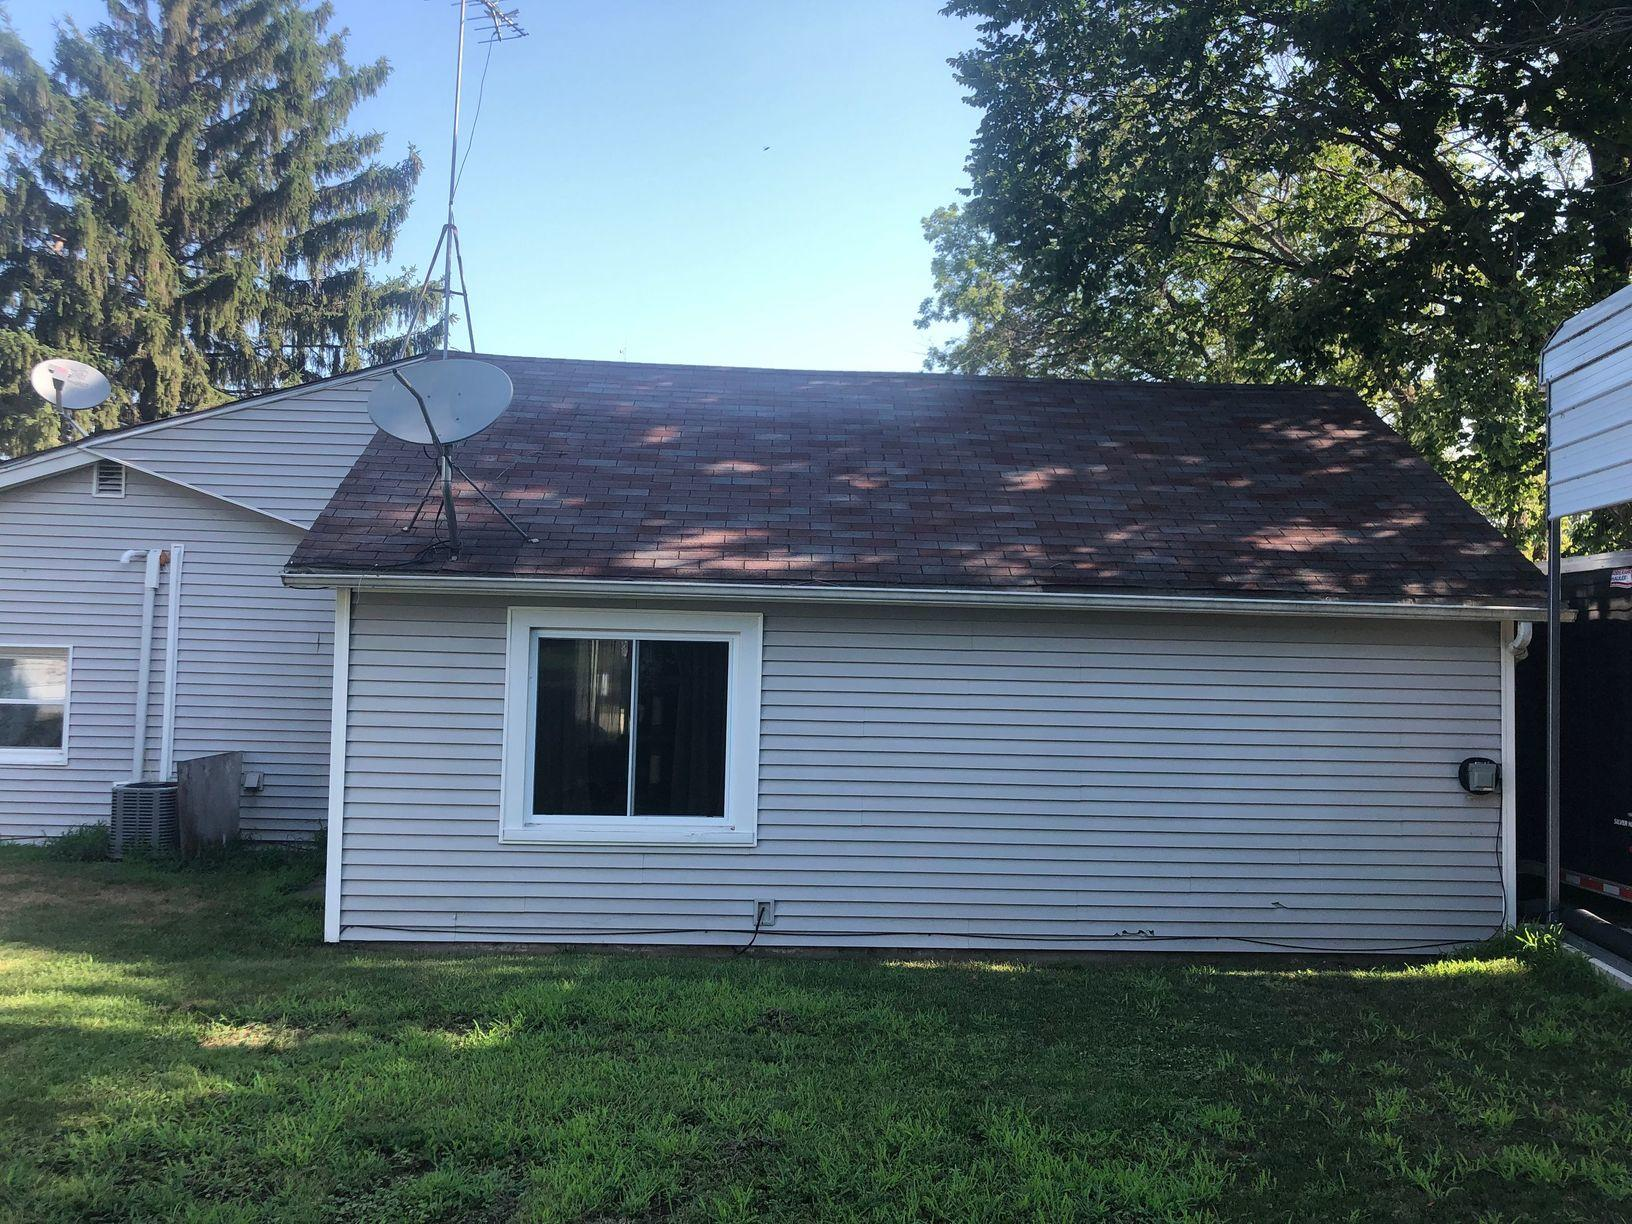 Three Layer Roof Replacement in Leaf River, IL - Before Photo